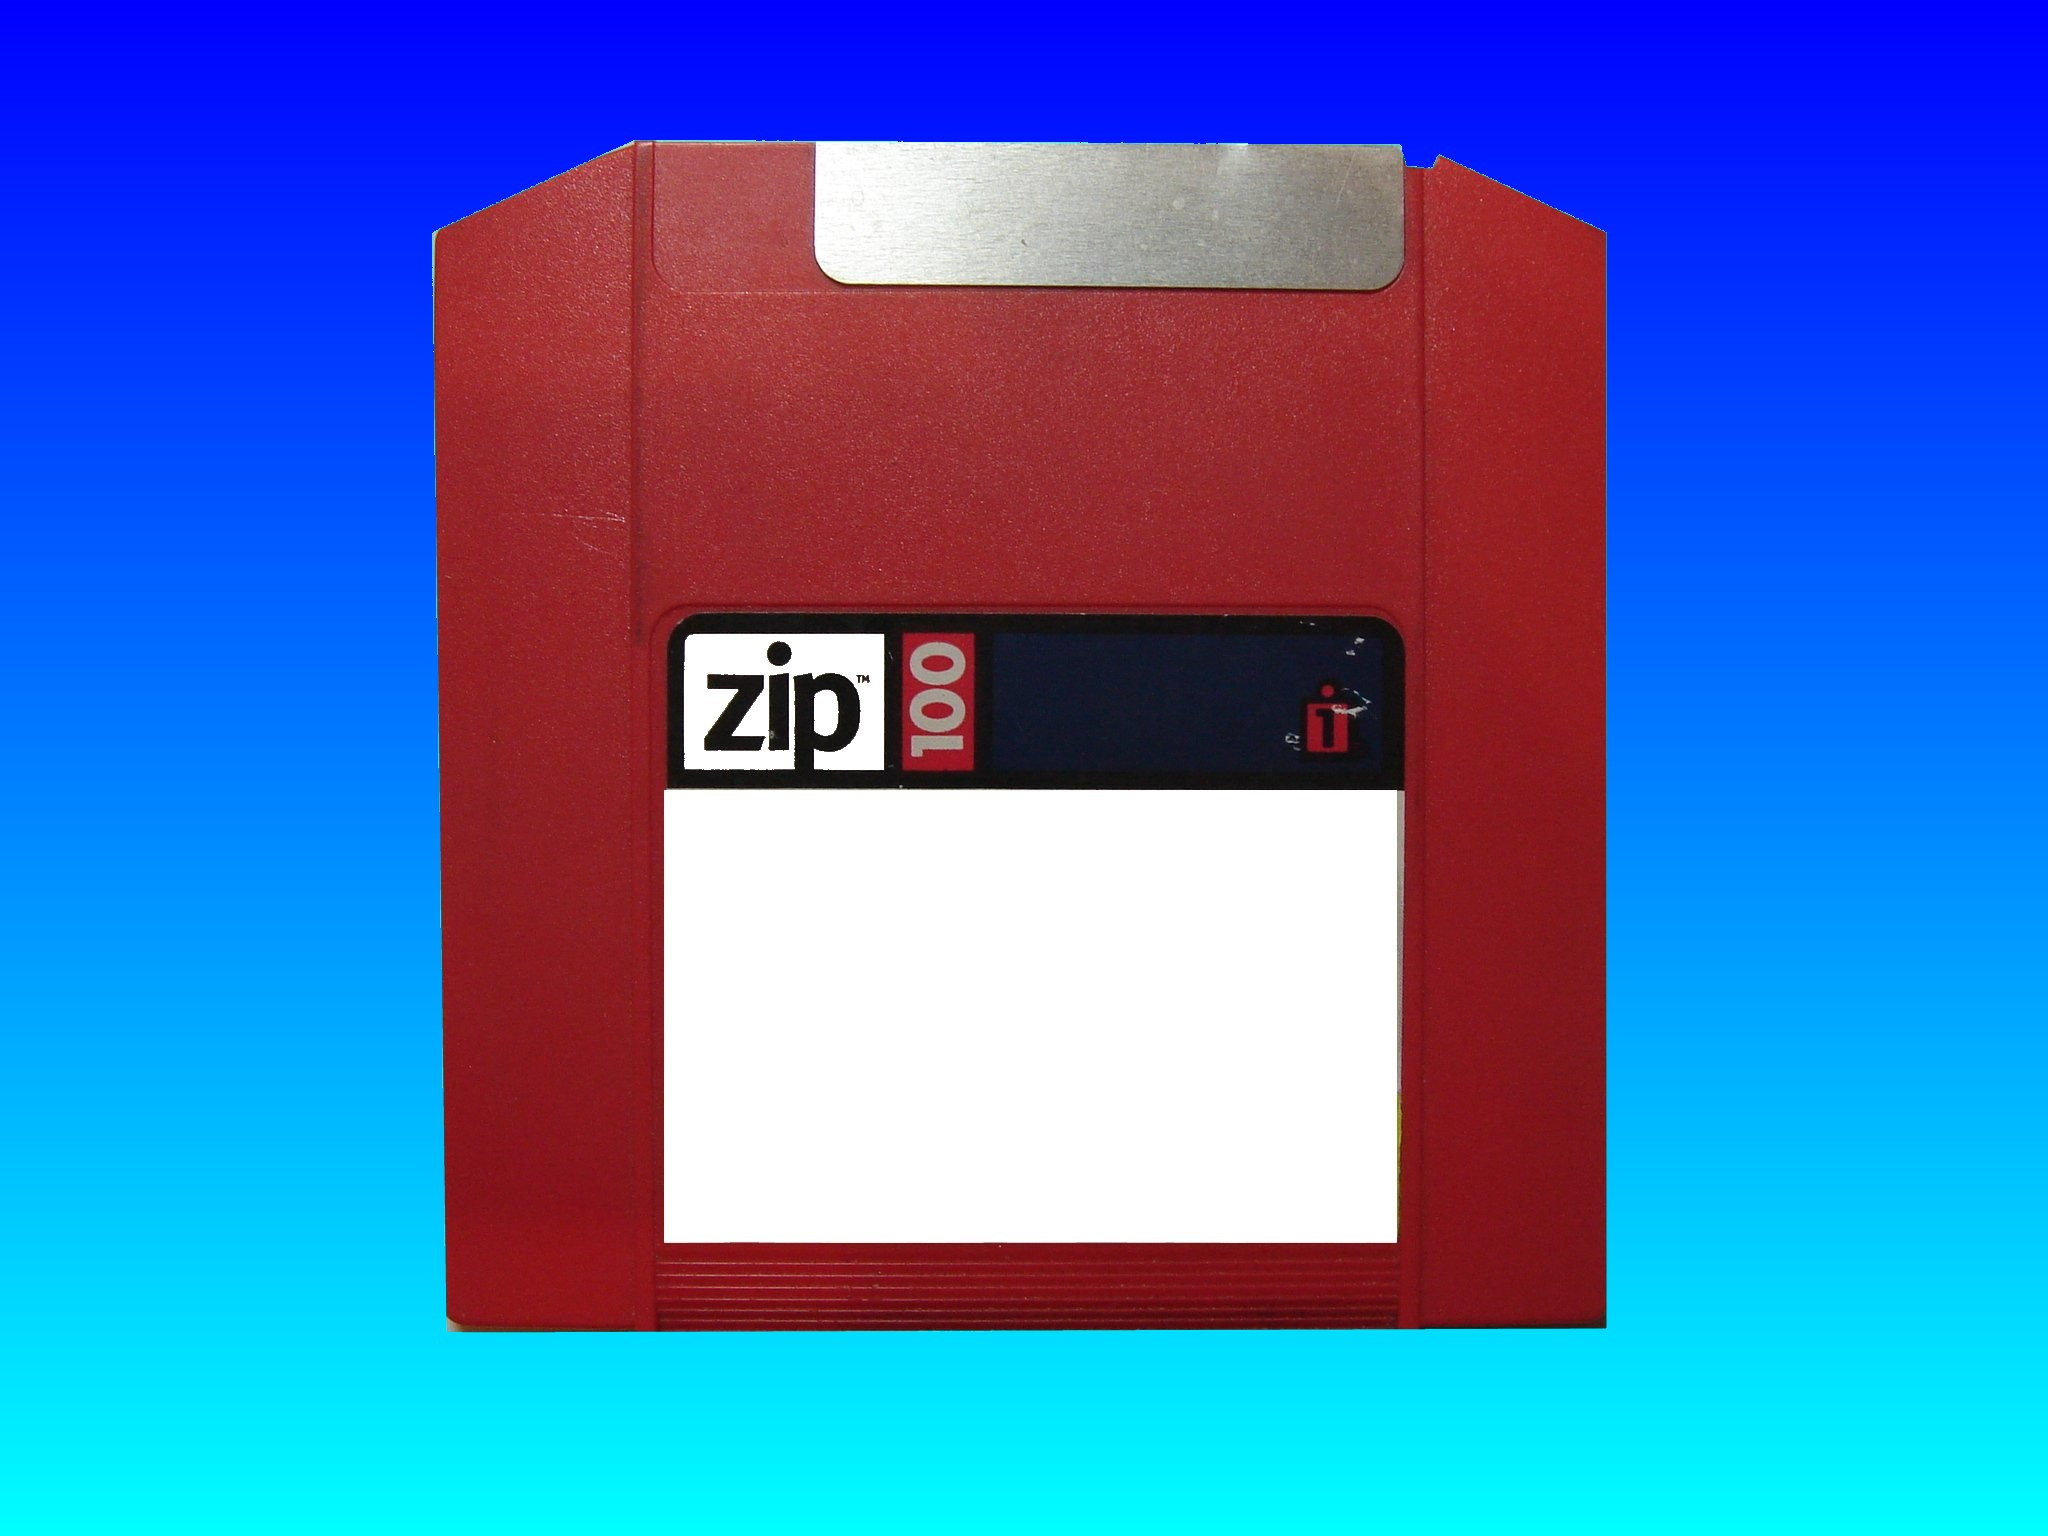 A red ZIP 100mb disk